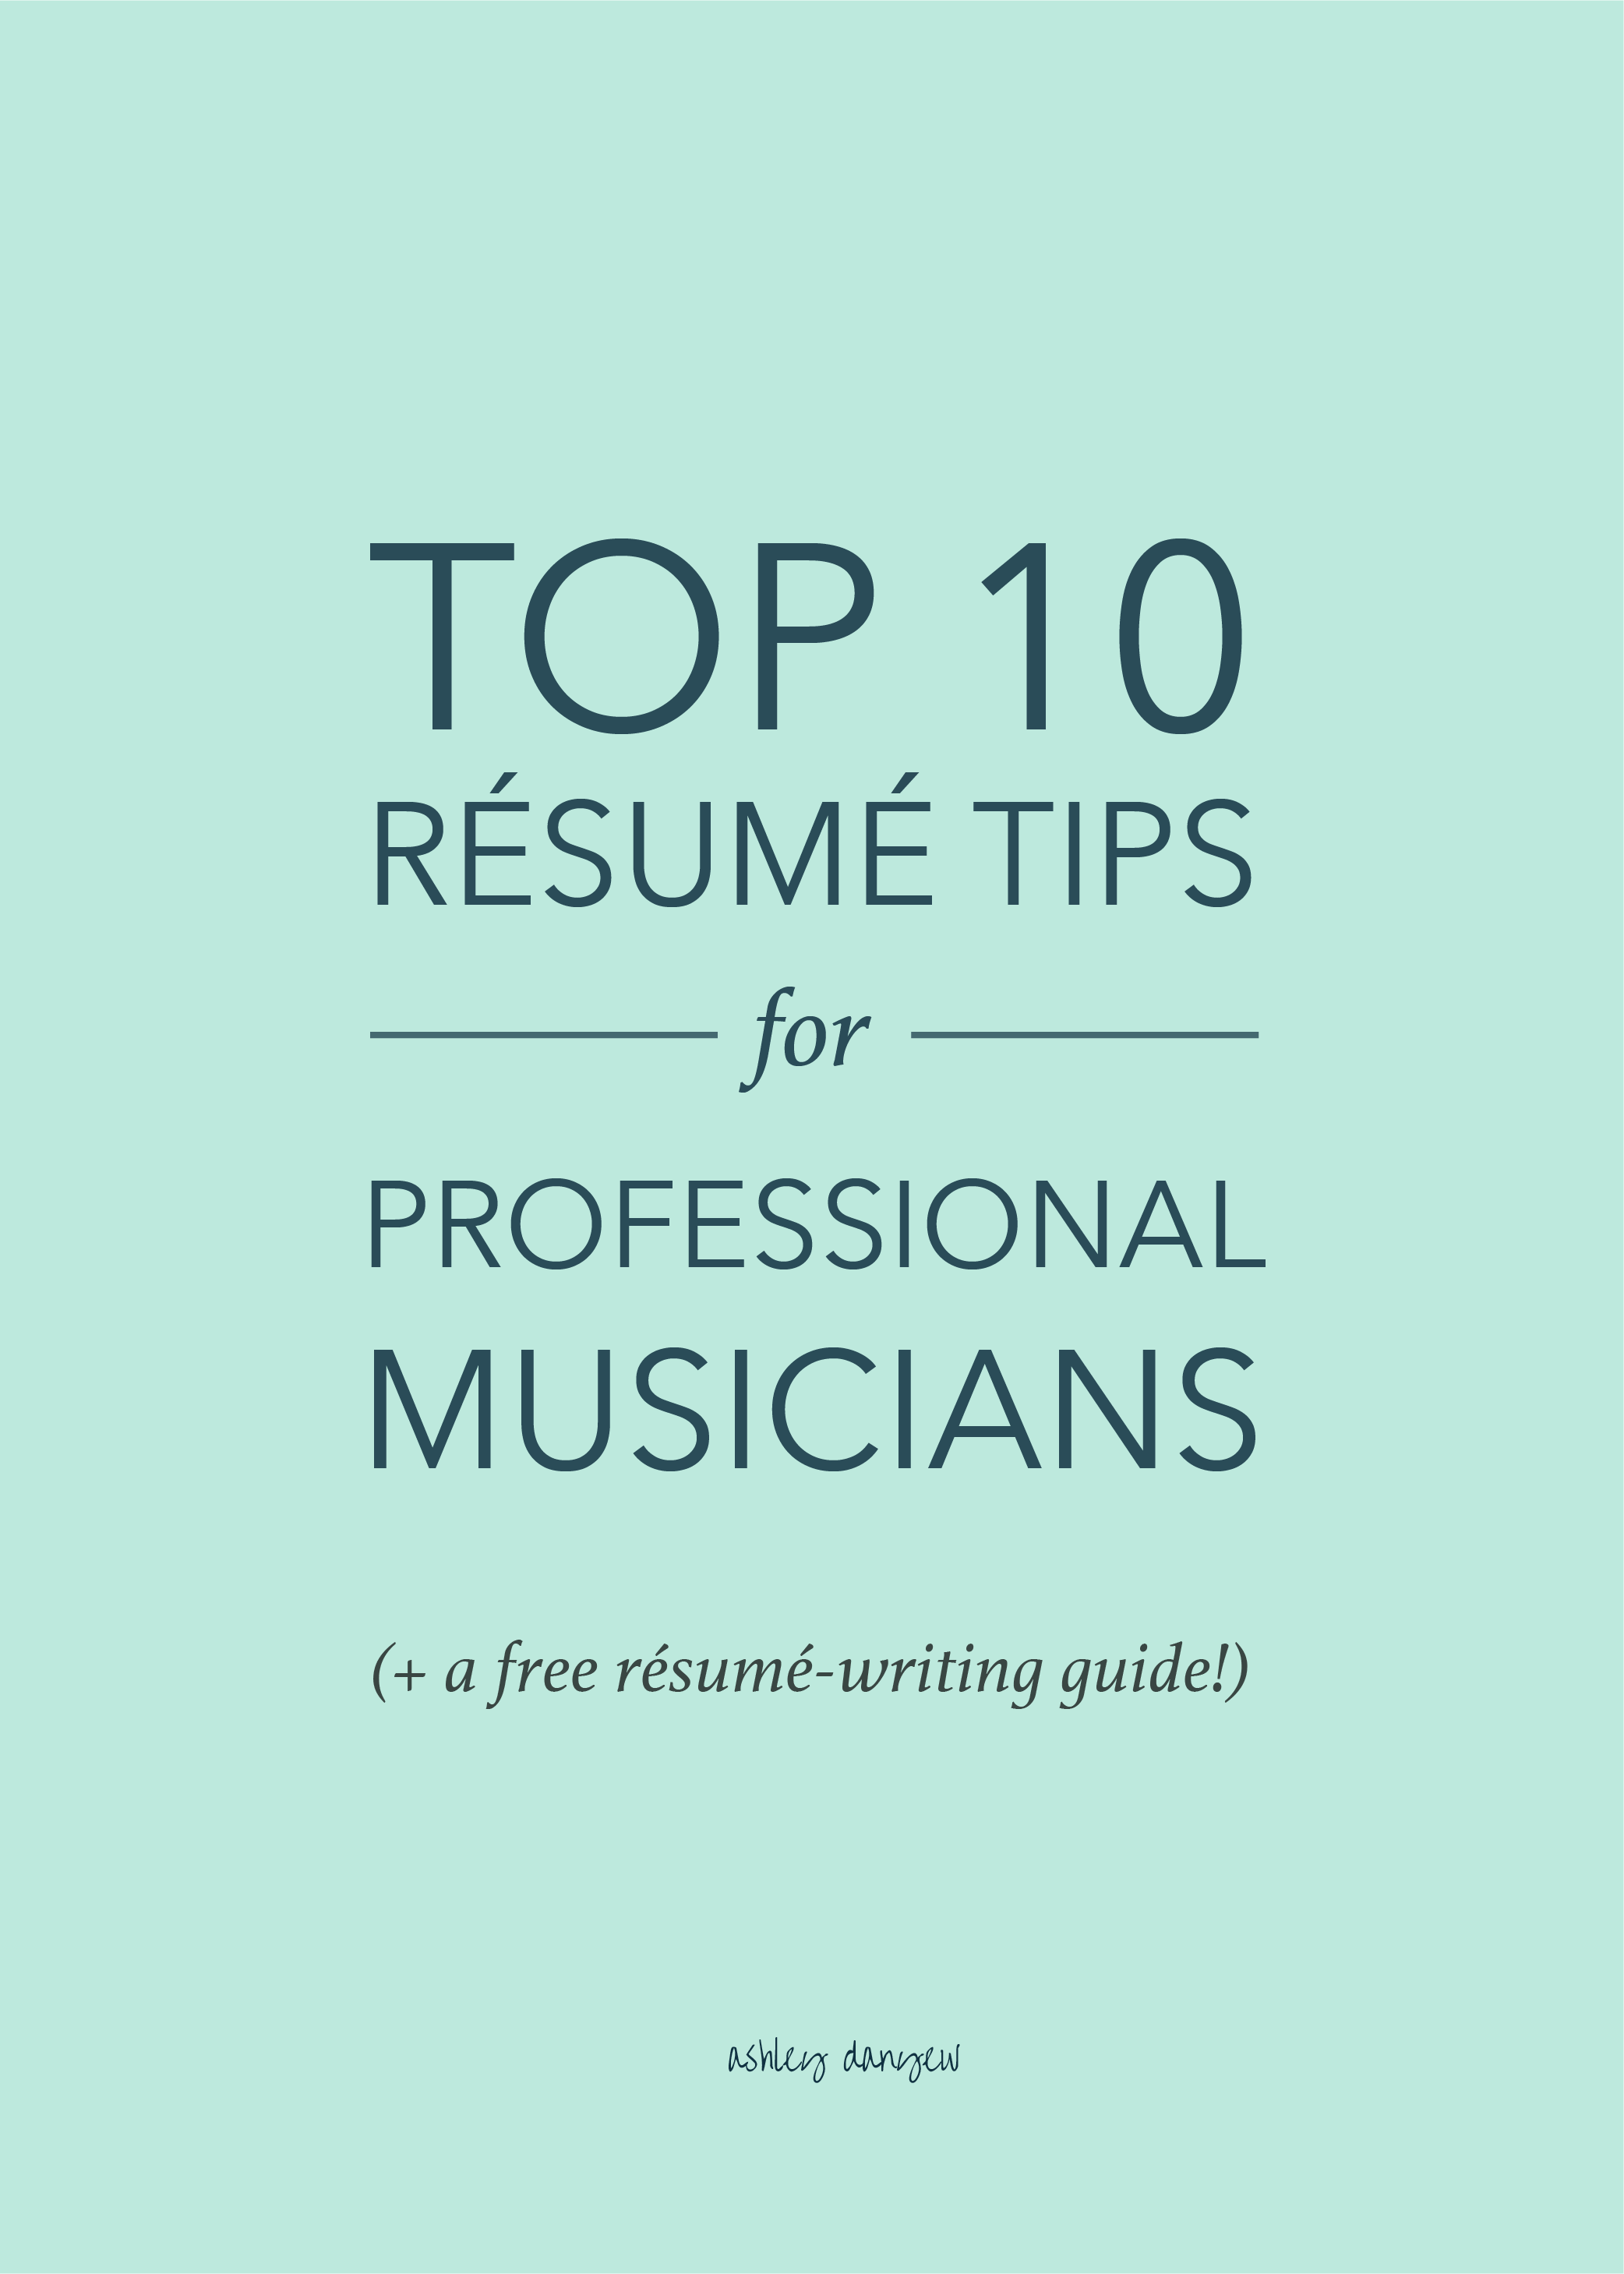 Musician Resume Top 10 Résumé Tips For Professional Musicians  Sample Resume